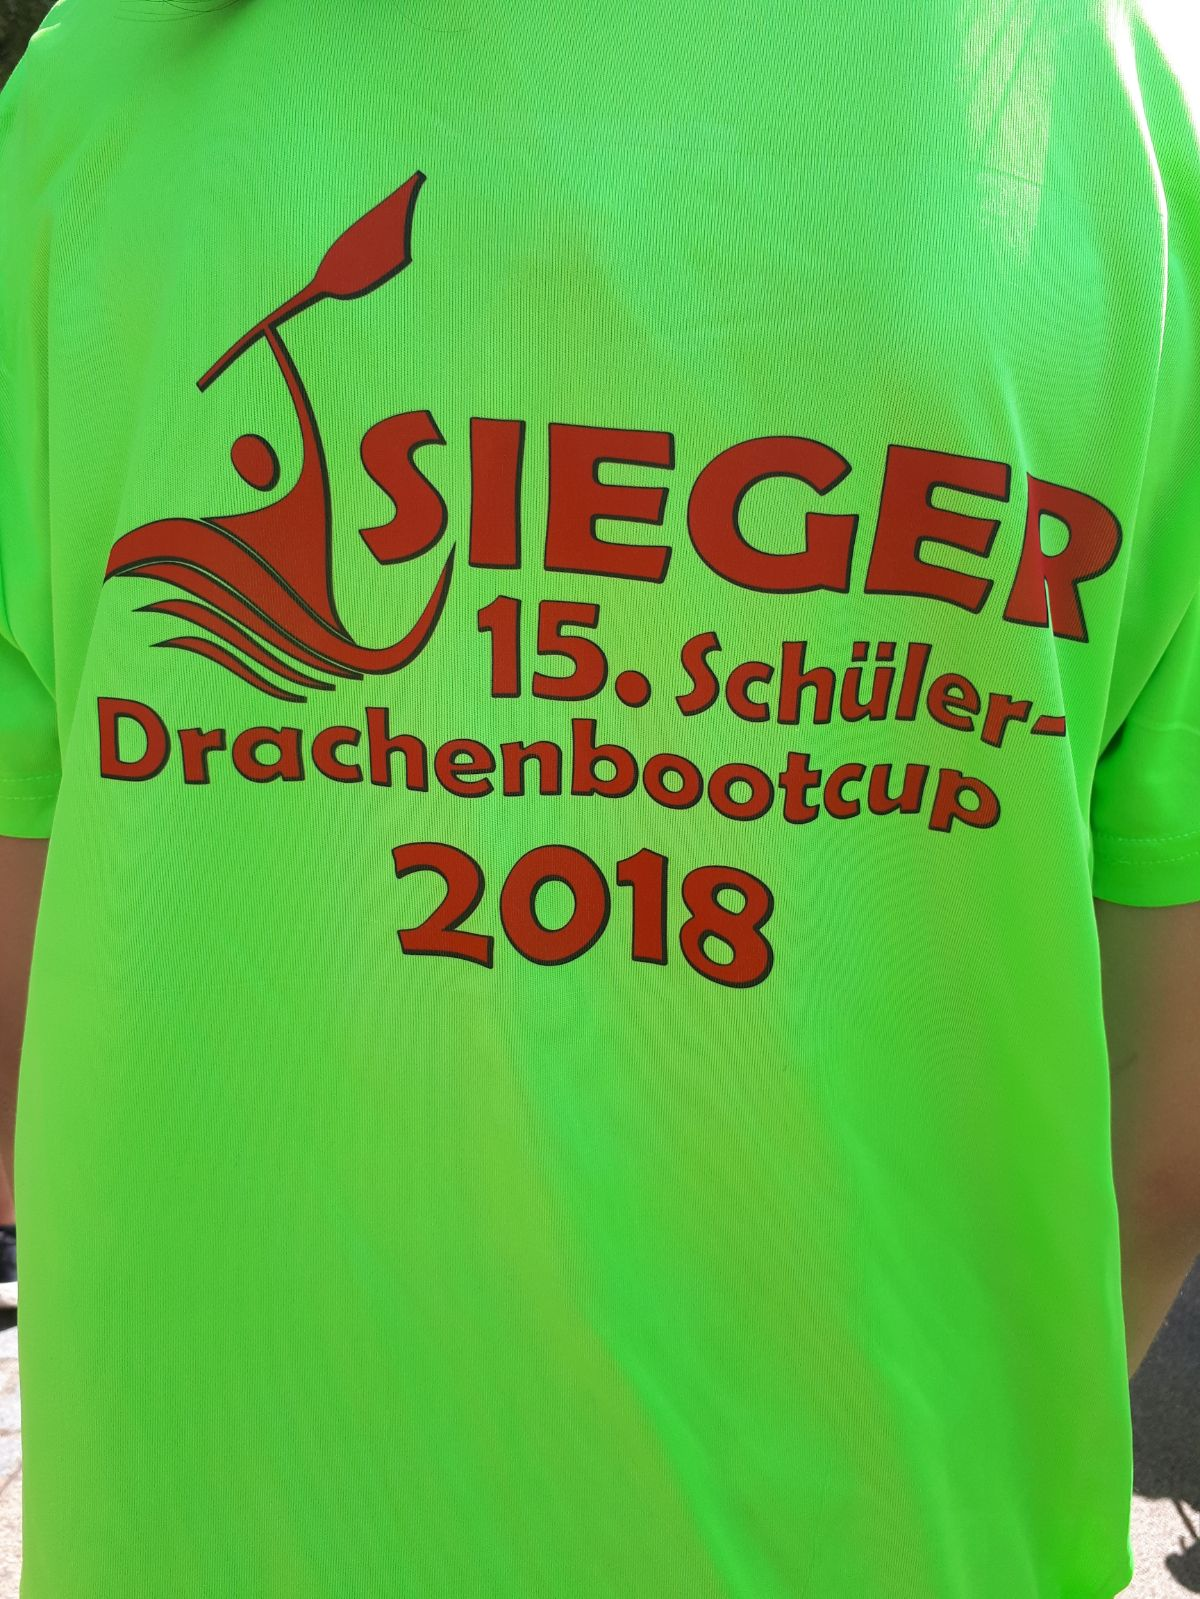 Drachenbootcup0 PHOTO 2018 06 30 16 09 19